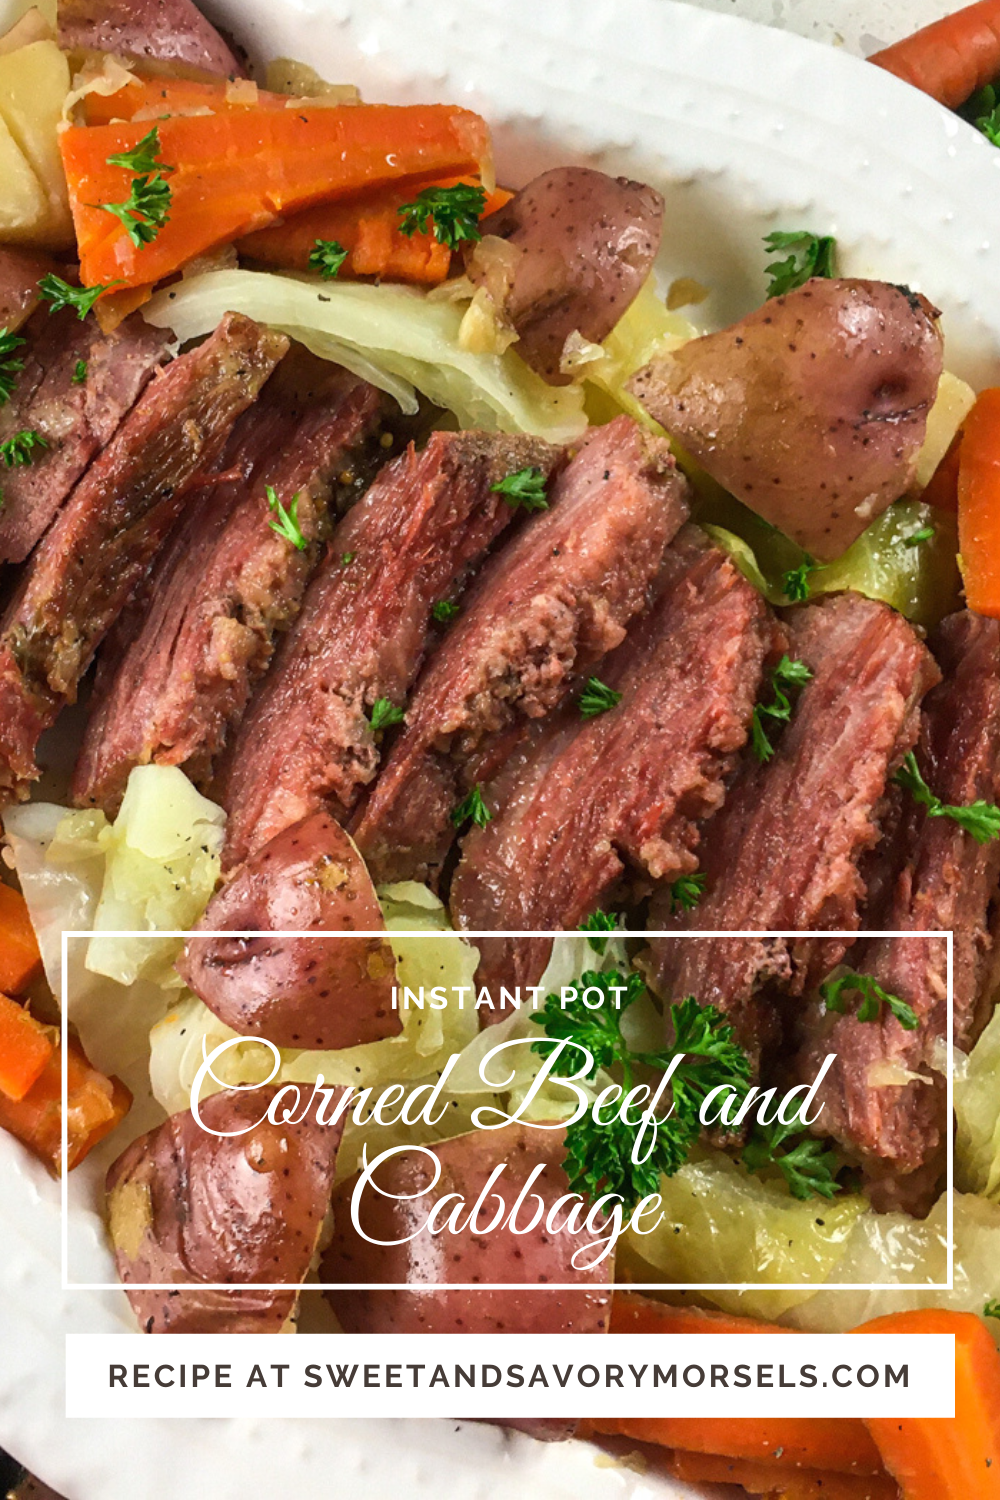 Tender, fall-apart chunks of beef braised in beef broth and vegetables for an unbelievably easy and delicious gluten-free Instant Pot Corned Beef and Cabbage dinner. It's the perfect recipe for St. Patrick's Day (or any other day of the year)! #sweetandsavorymorsels #recipe #StPatricksDay #instantpotrecipe